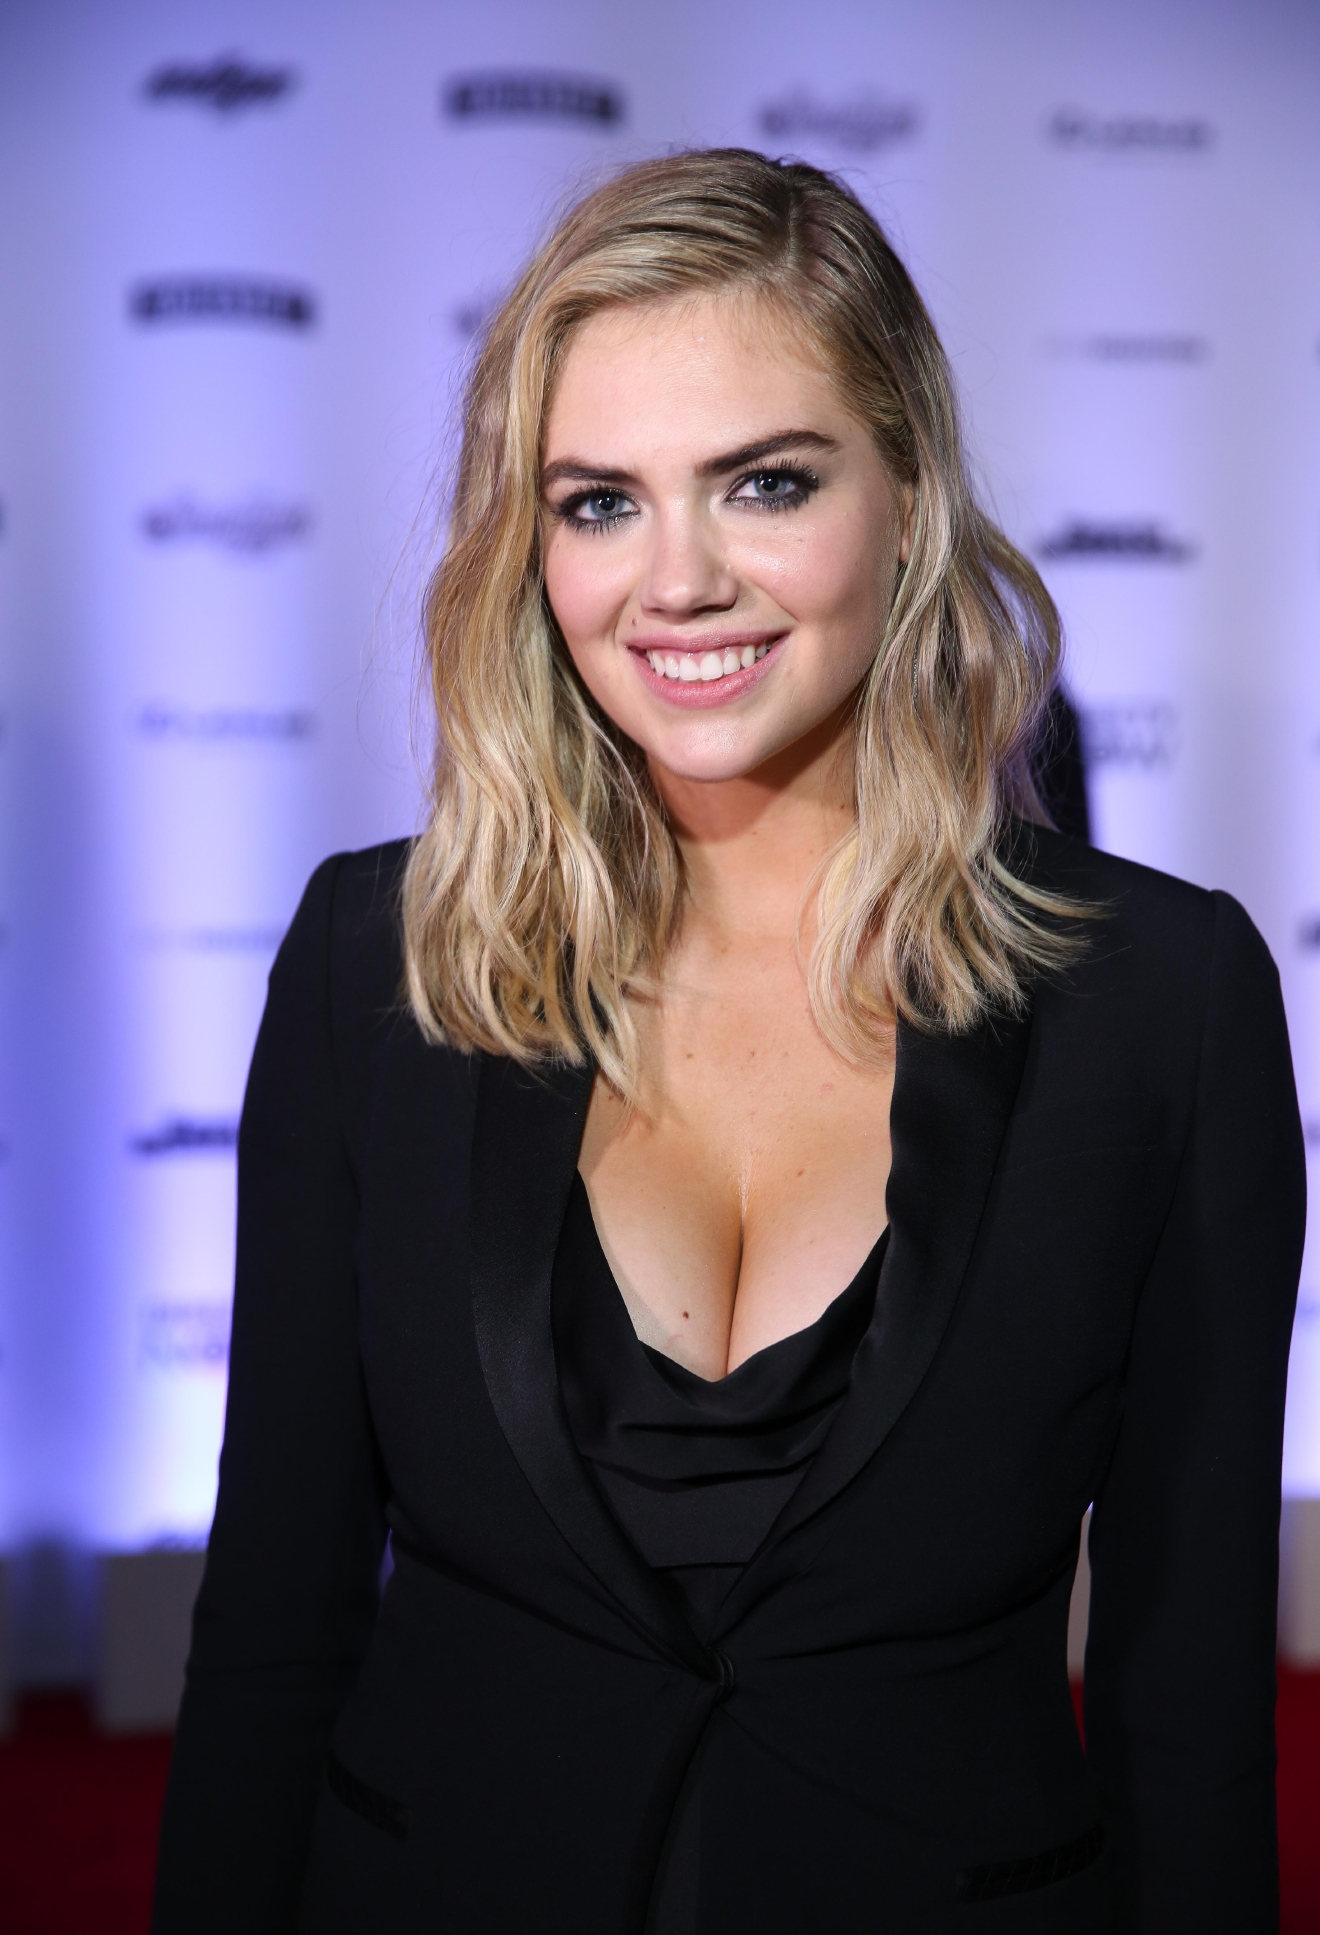 Sports Illustrated Swimsuit 2017 NYC launch event at Center415 Event Space on February 16, 2017 in New York City.                                    Featuring: Kate Upton                  Where: New York, New York, United States                  When: 17 Feb 2017                  Credit: Andres Otero/WENN.com